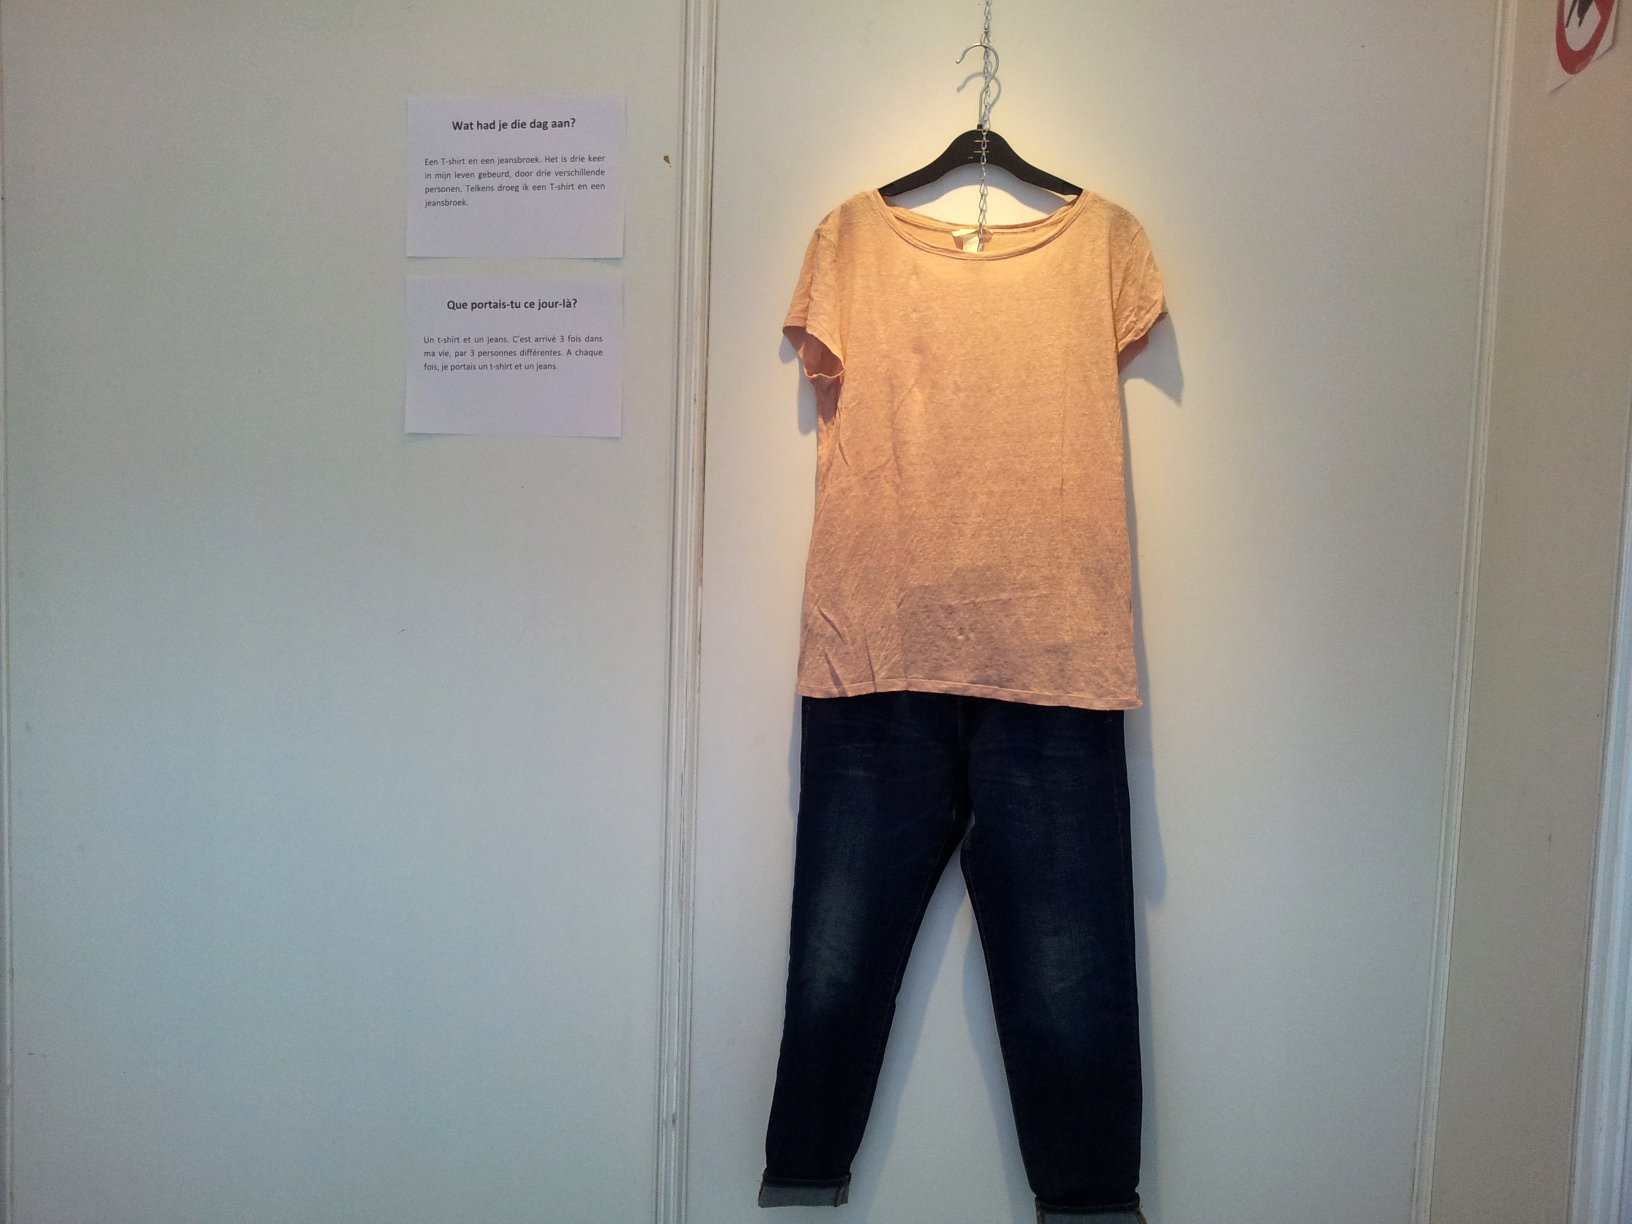 Molenbeek-Exhibit-What-They-Wore_004.jpg